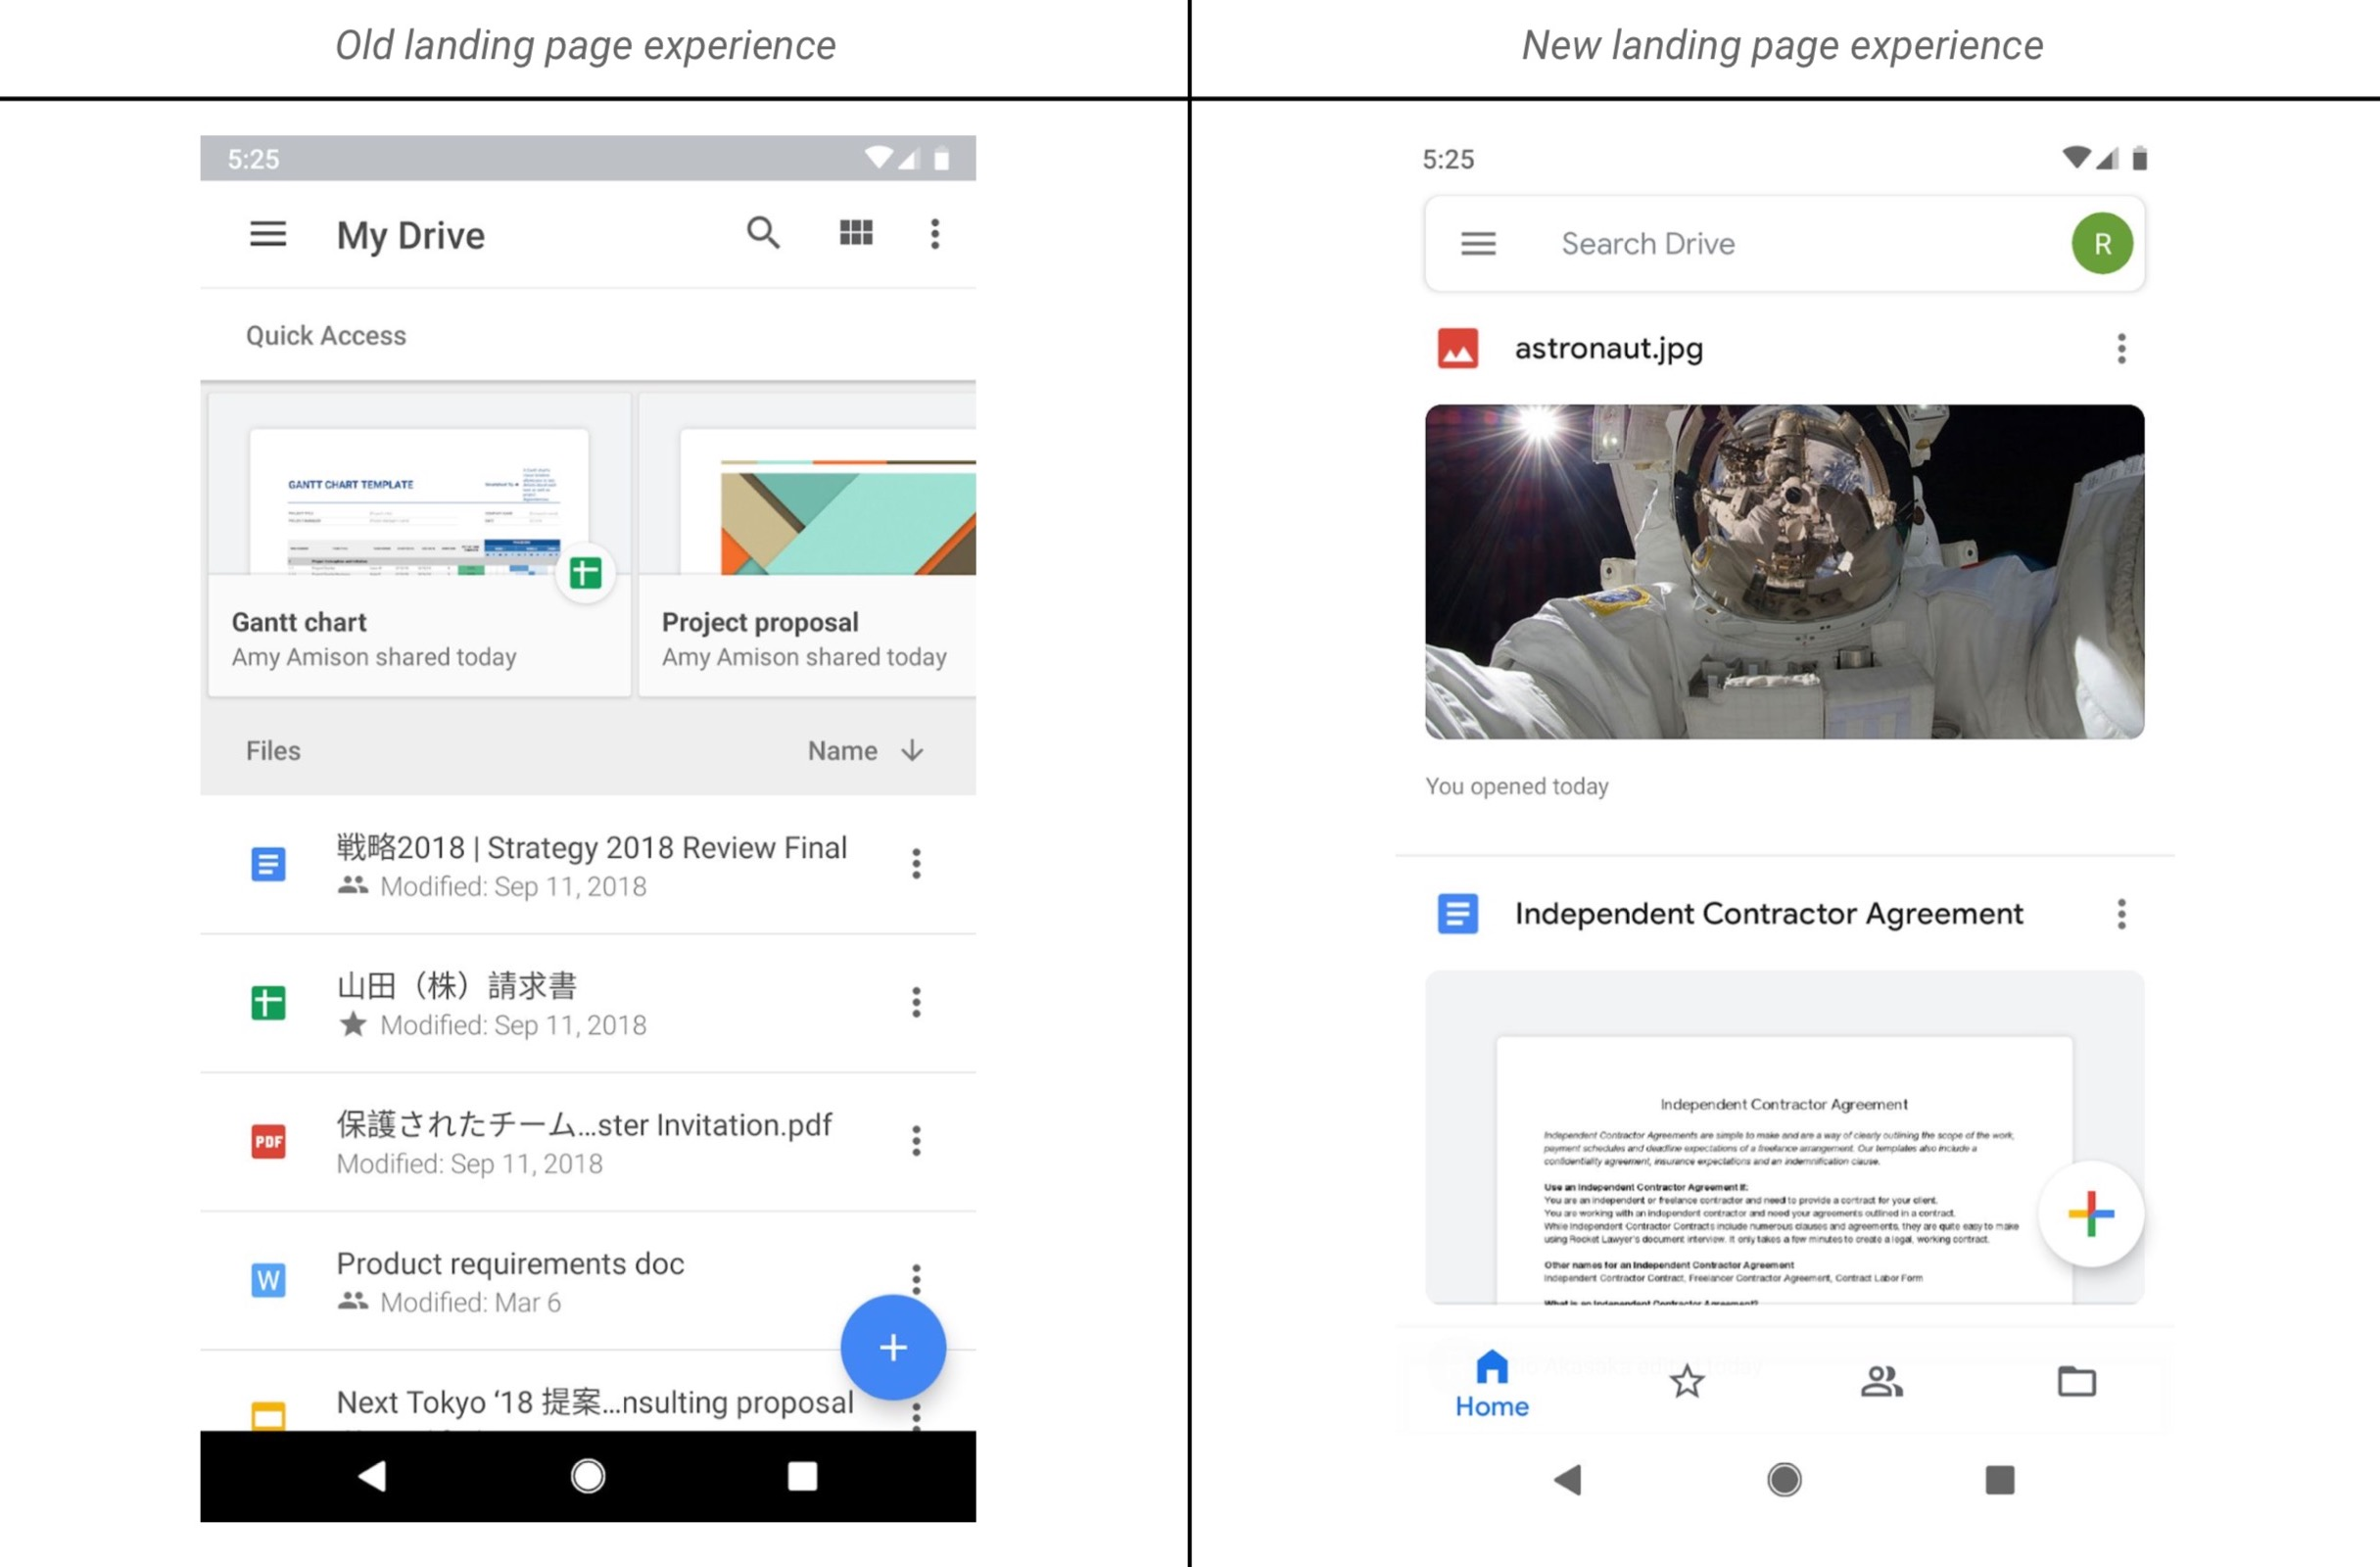 Google Drive rolls out Material Theme, dark mode for some - 9to5Google